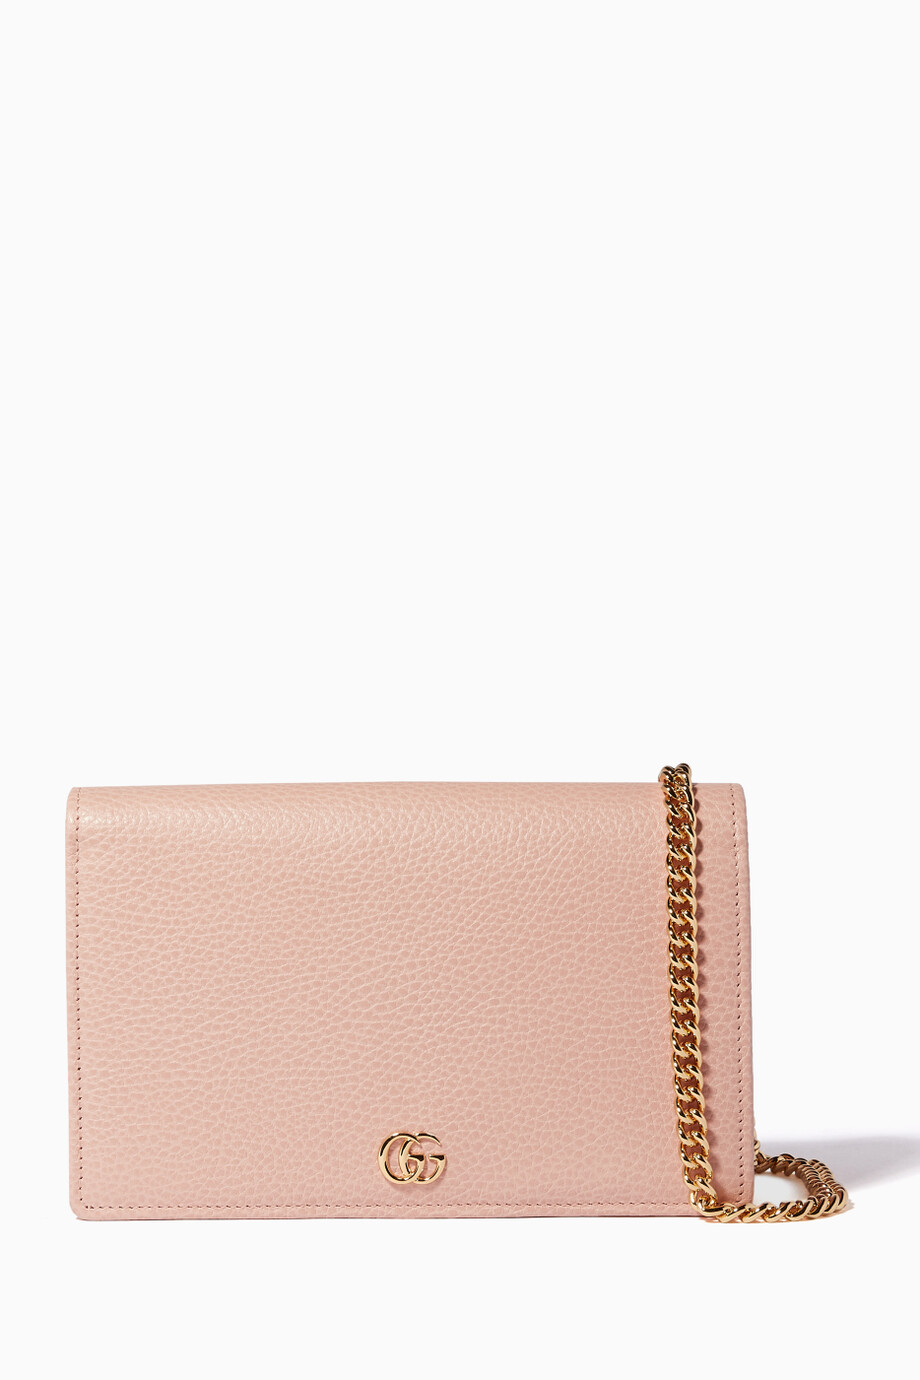 4f2a53a2083 Shop Gucci Pink Mini GG Marmont Chain Wallet for Women